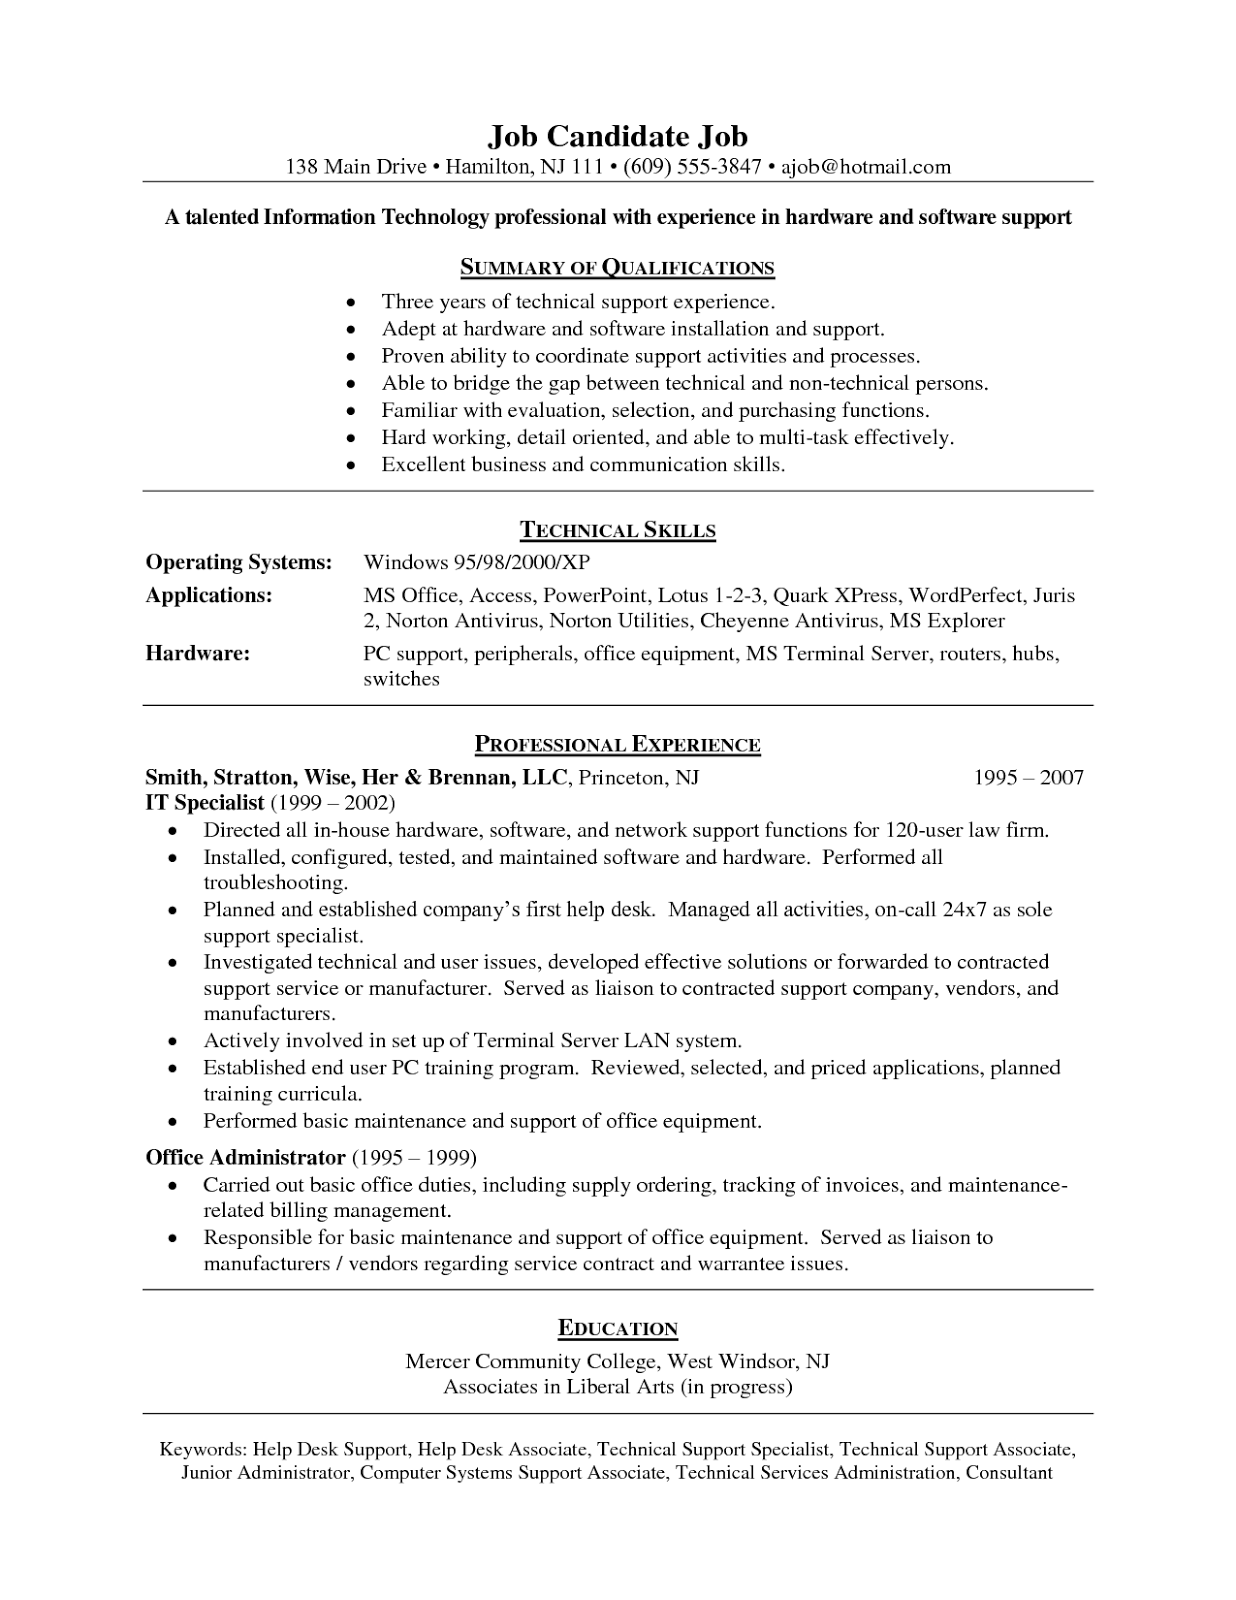 resume Resume Accents resume word with accents stock sample cv cover letter